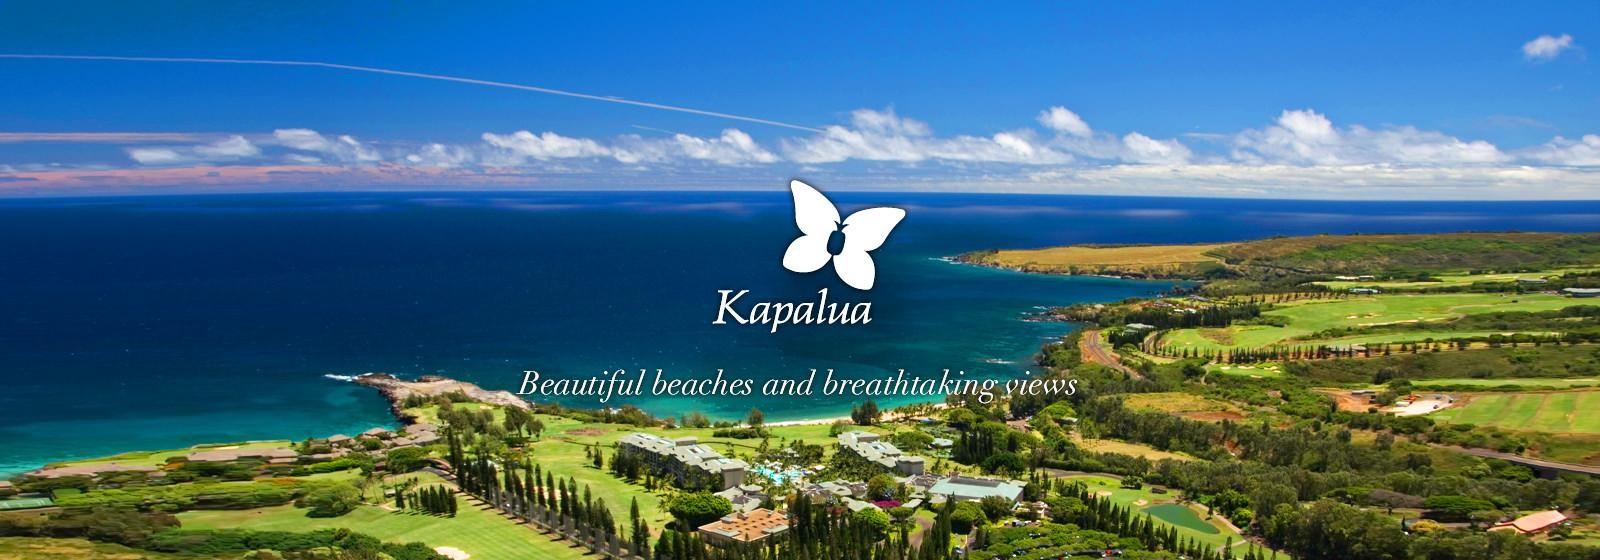 Kapalua Resort - Maui Hawaii Real Estate, Maui Resort ...